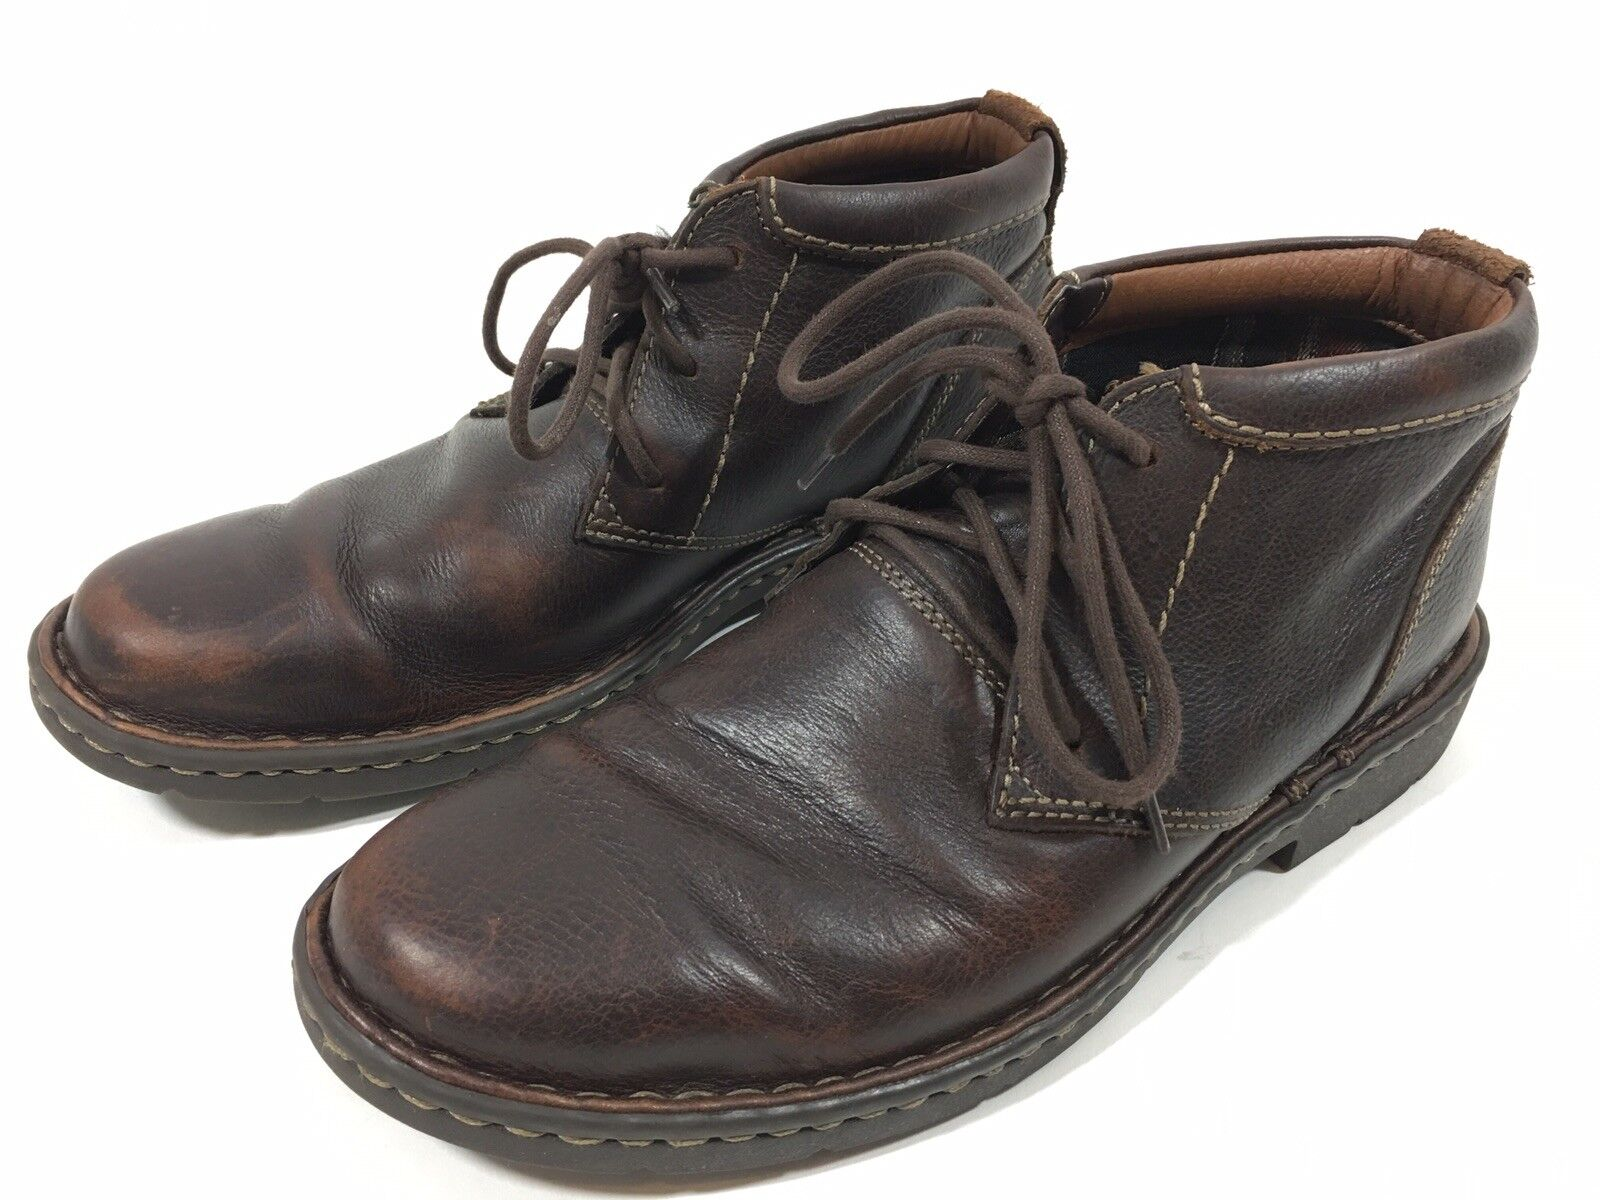 Clarks Stratton Limit Chukka Bottines Marron Hommes sz 8.5 M 02528 1825 avec